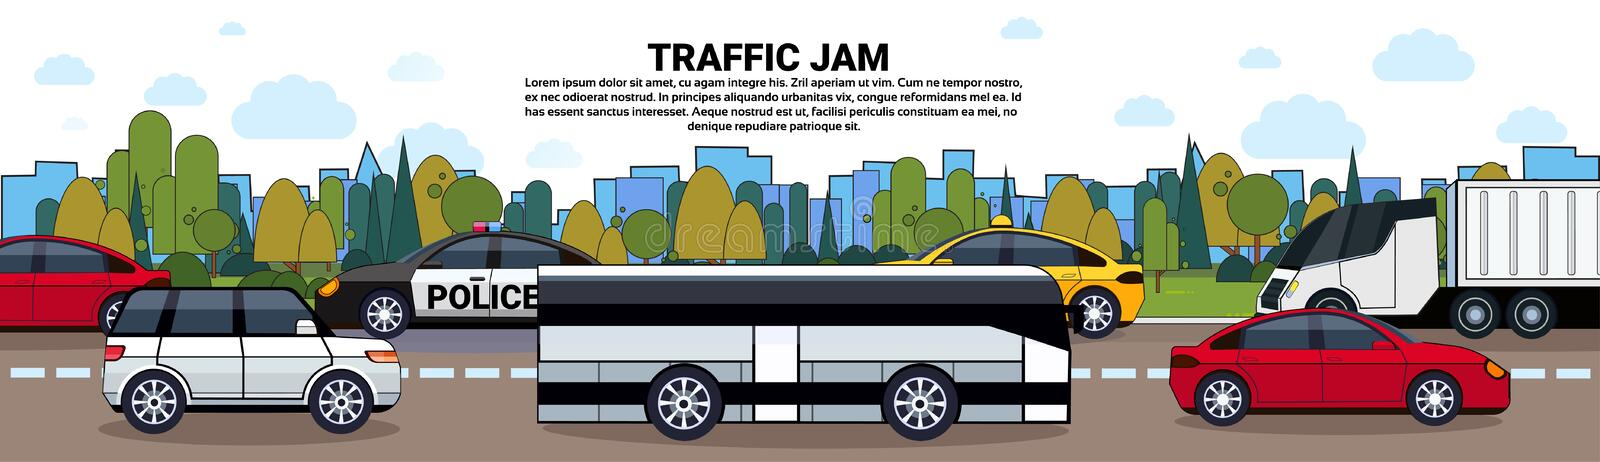 Traffic Jam Poster With Cars And Bus On Road Over City Buildings Background vector illustration